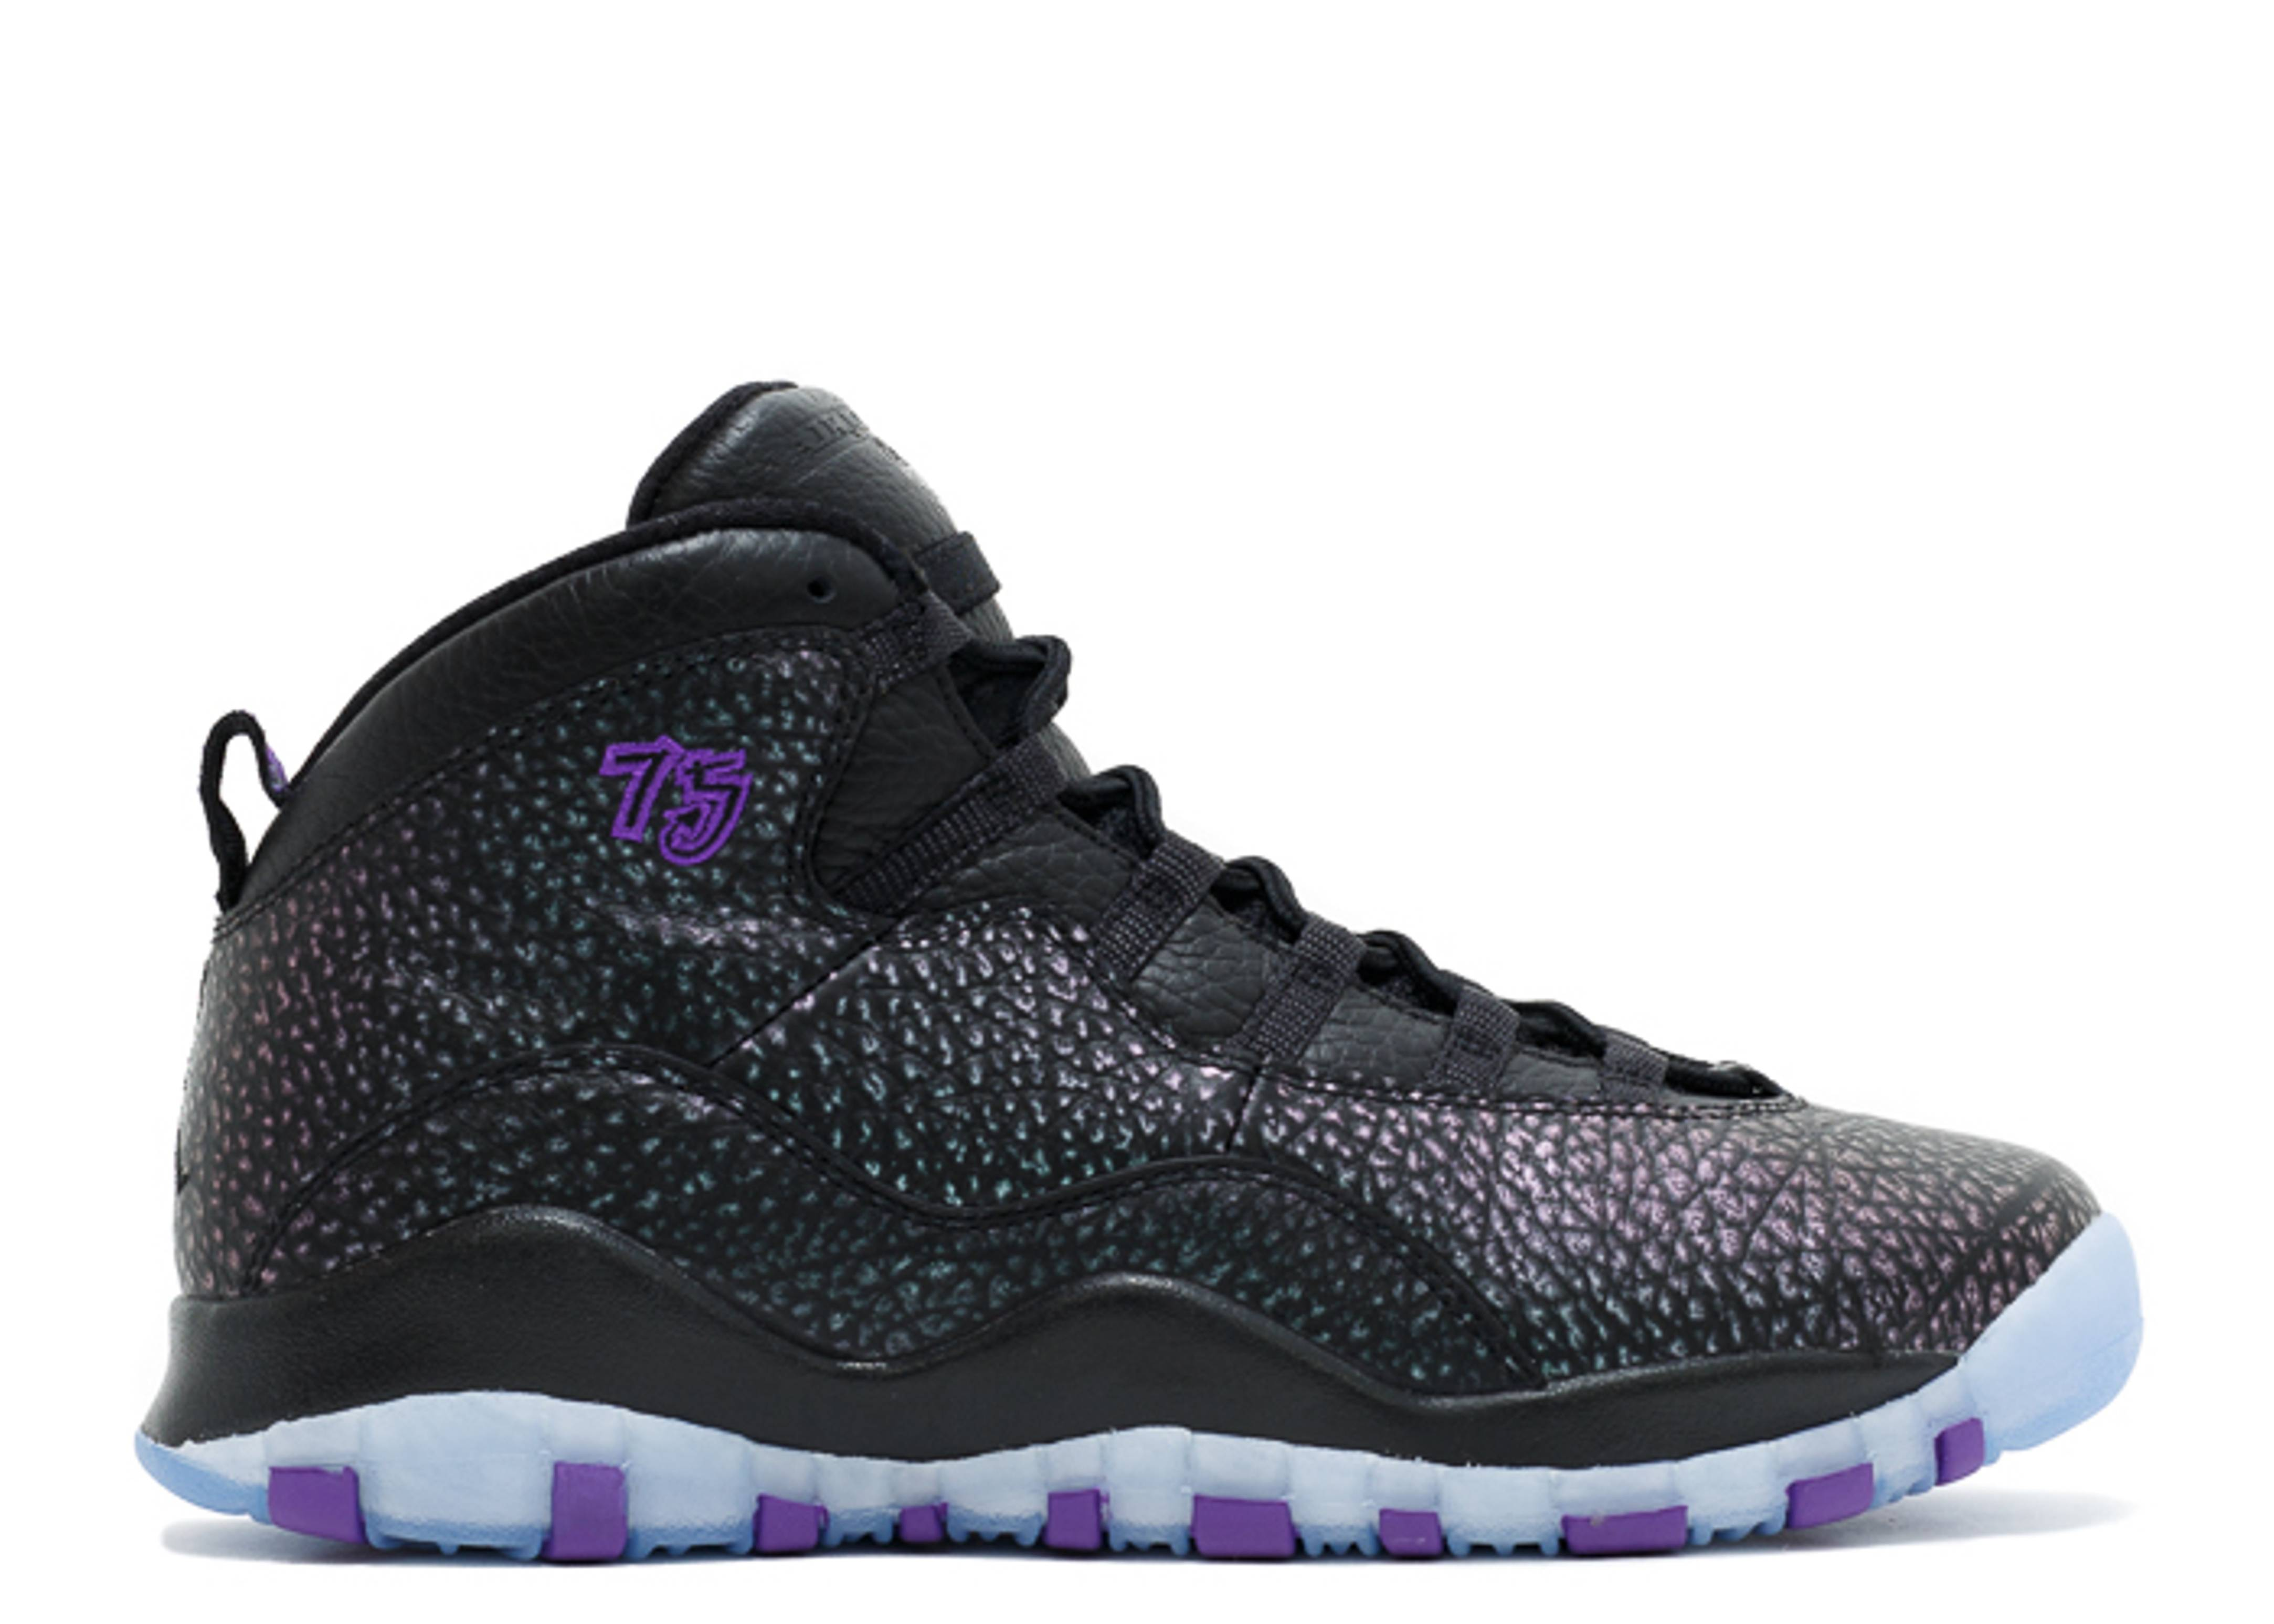 buy online 54759 84e85 air jordan 10 retro bg (gs)